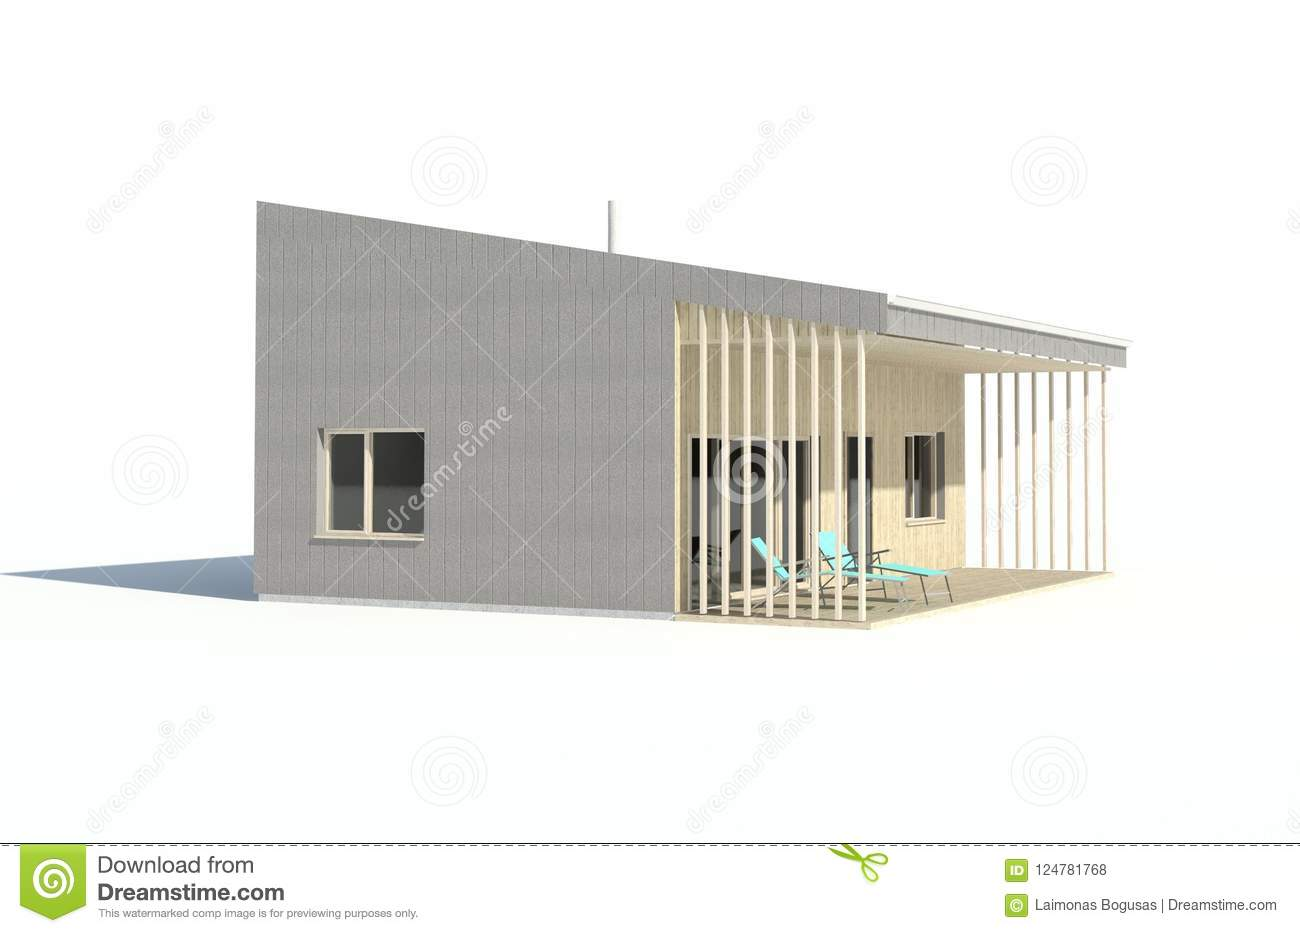 3d render - isolated visualisation of the single family house